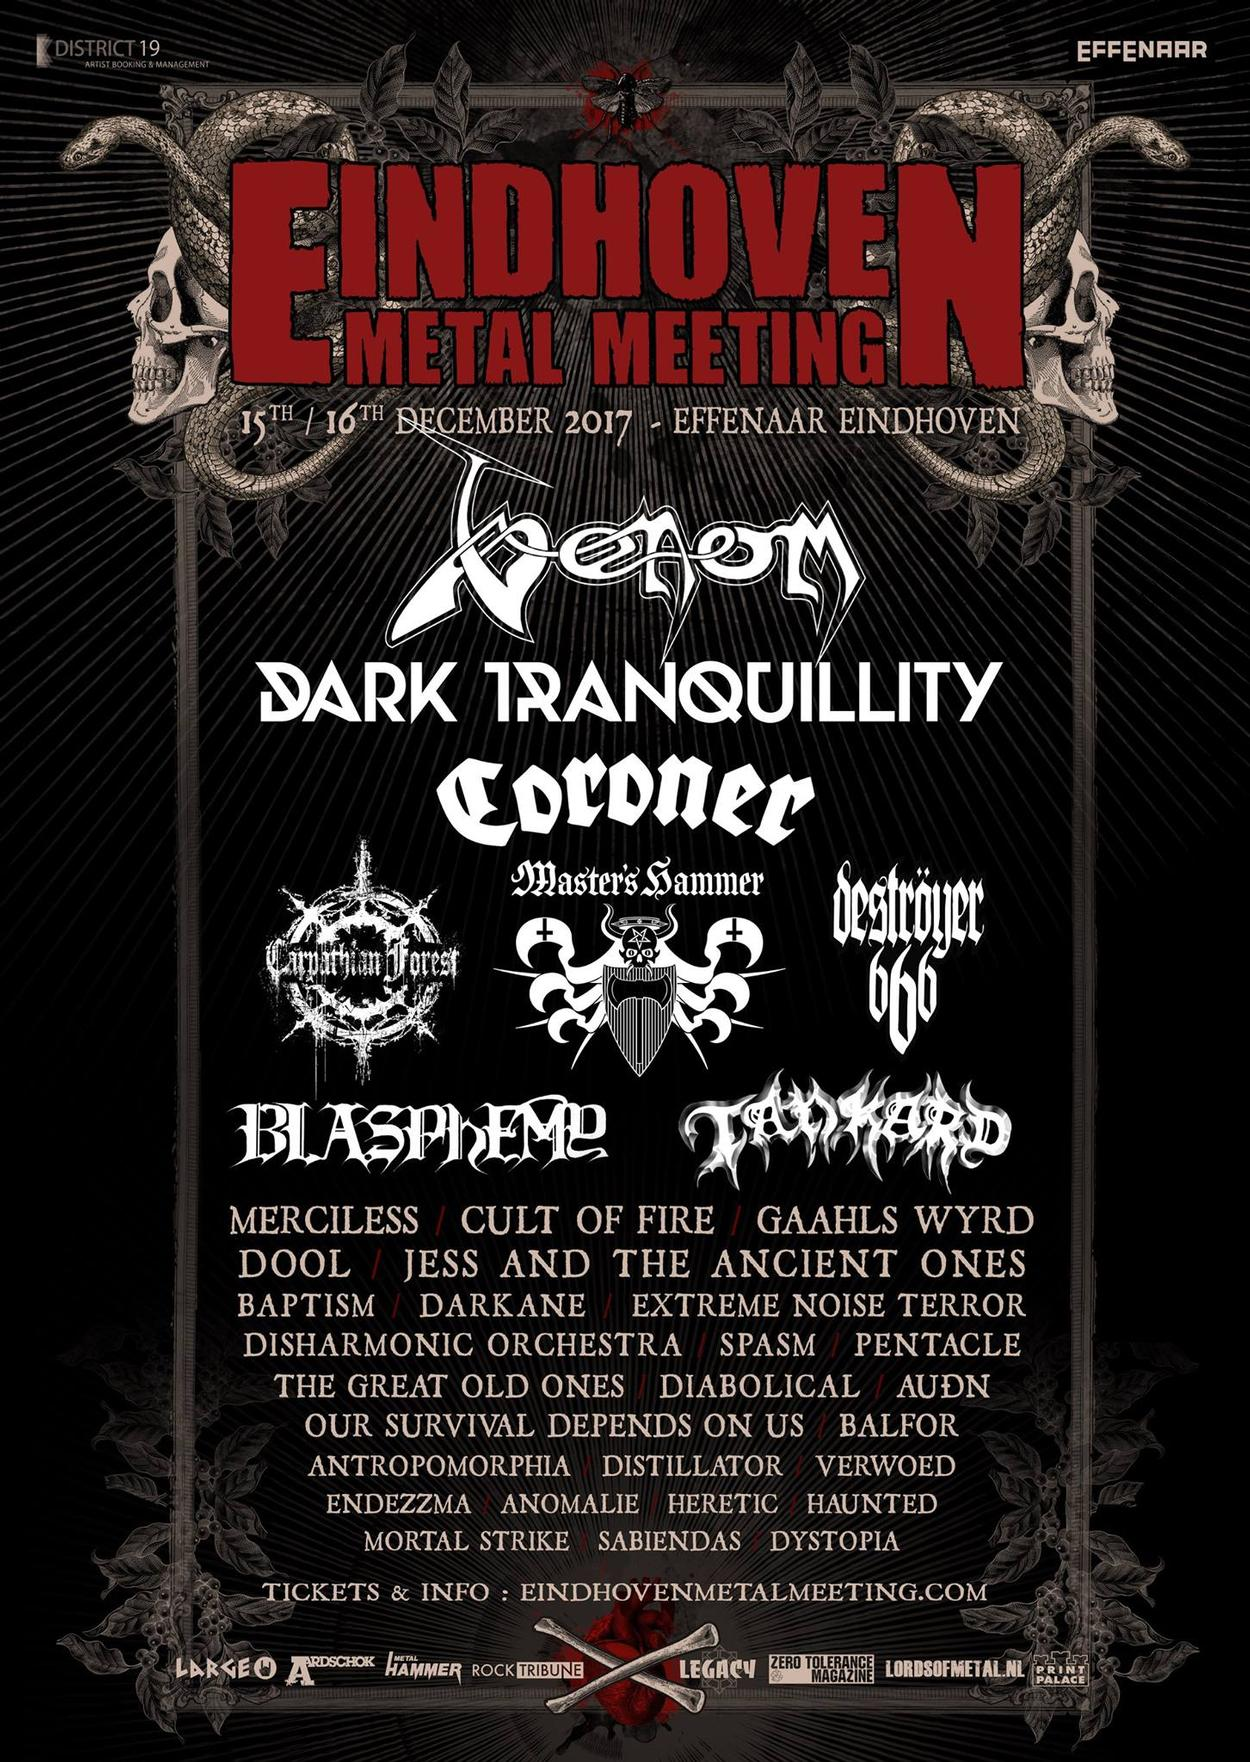 venom black metal eindhoven metal meeting 2017